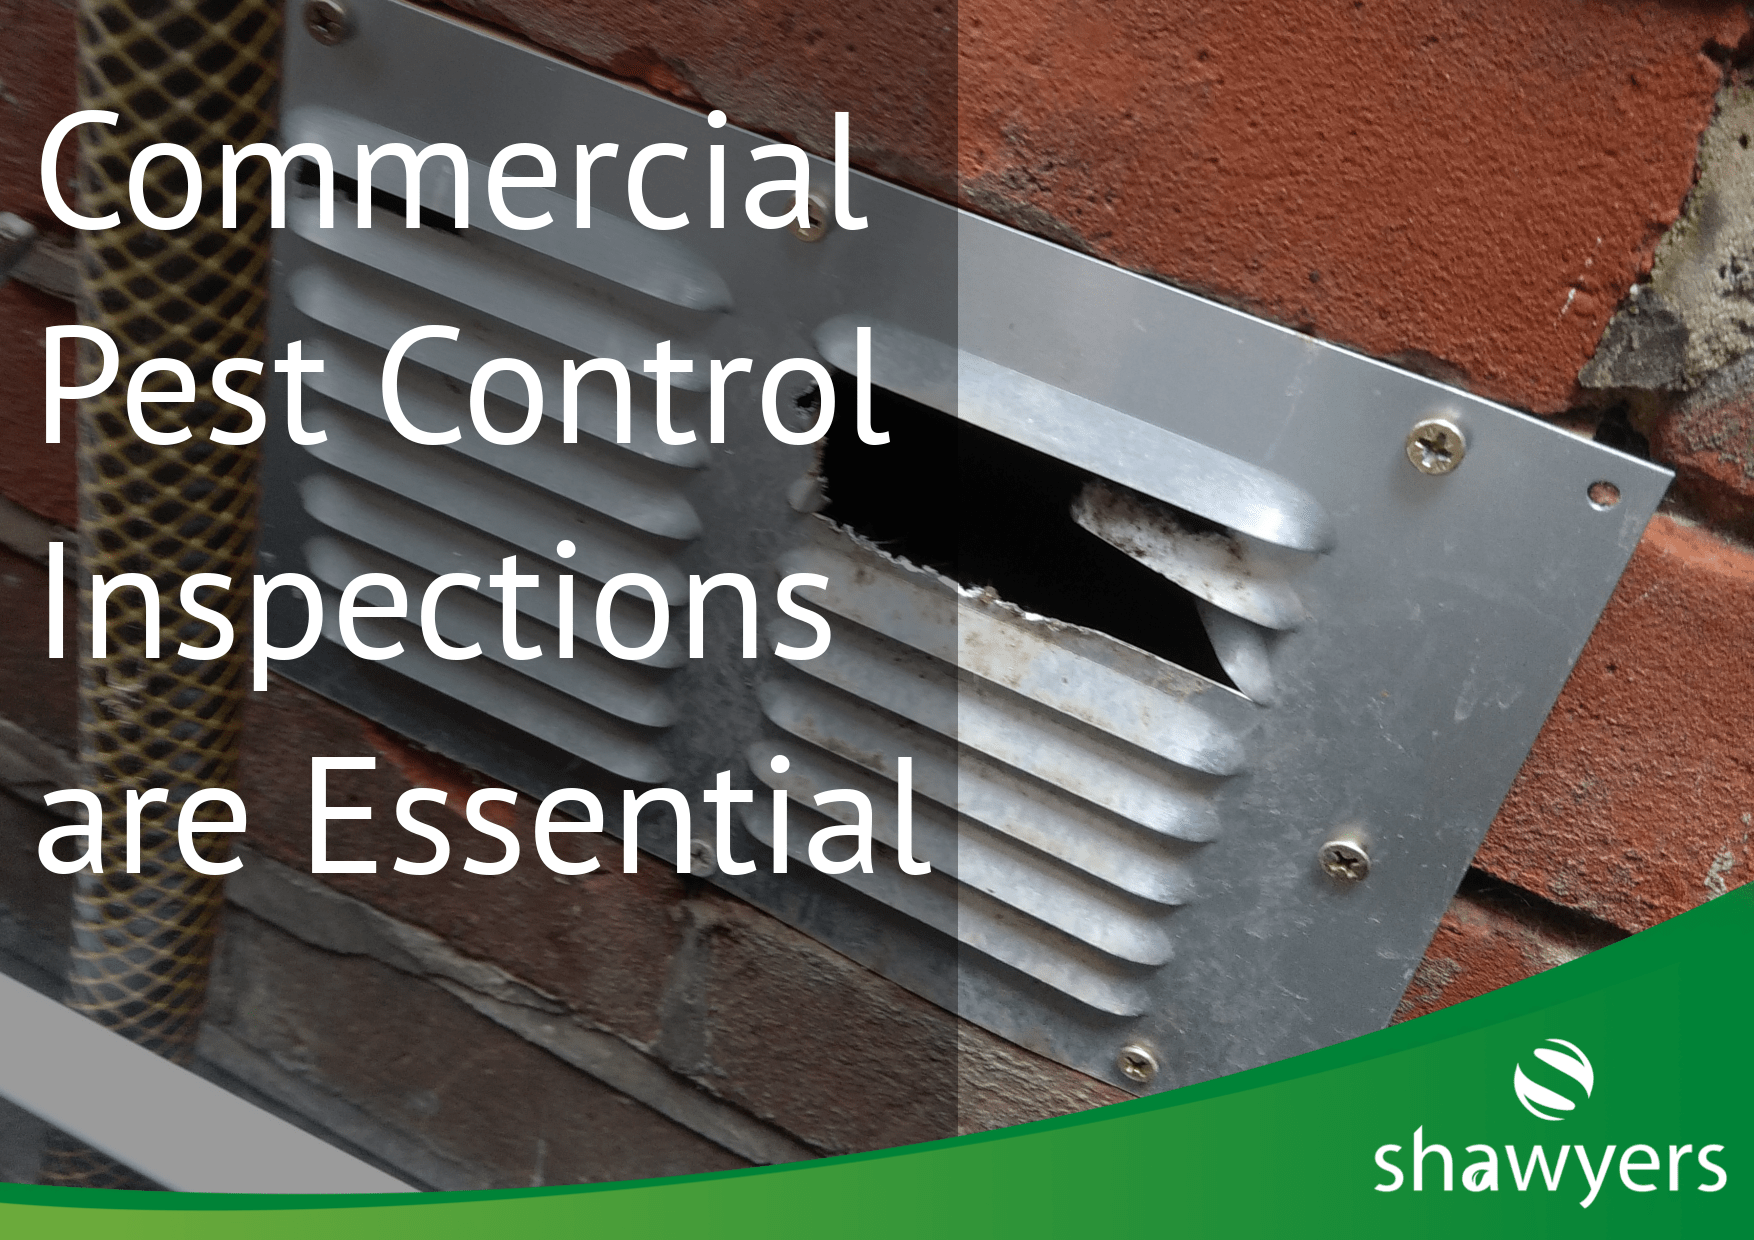 commercial pest inspections